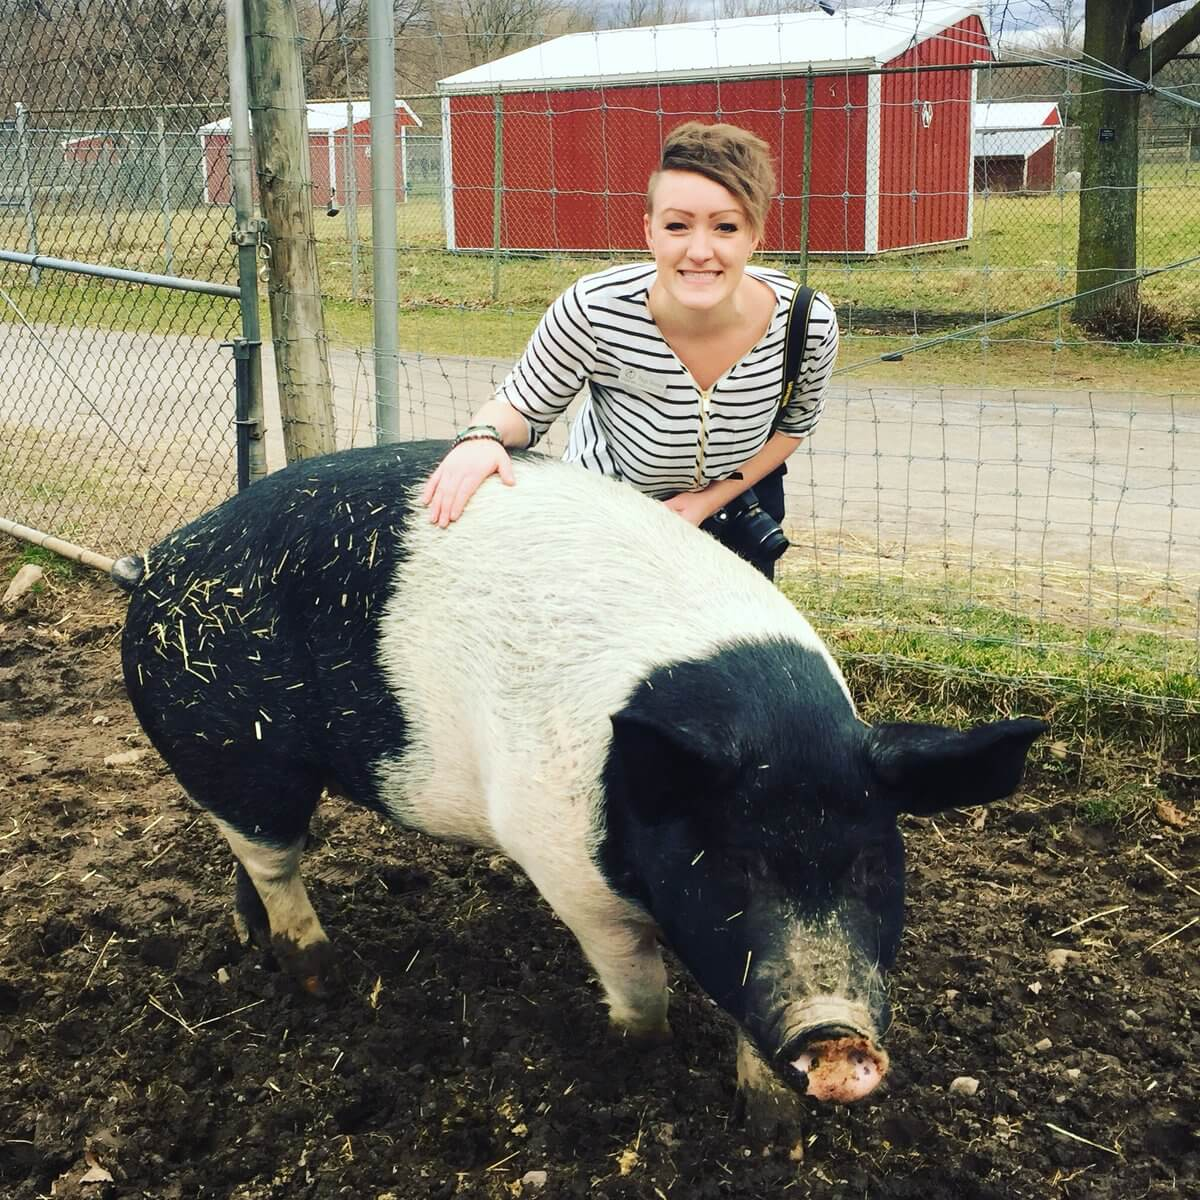 Paige Doerner of Lollypop Farm is all about sharing your city experiences with others.